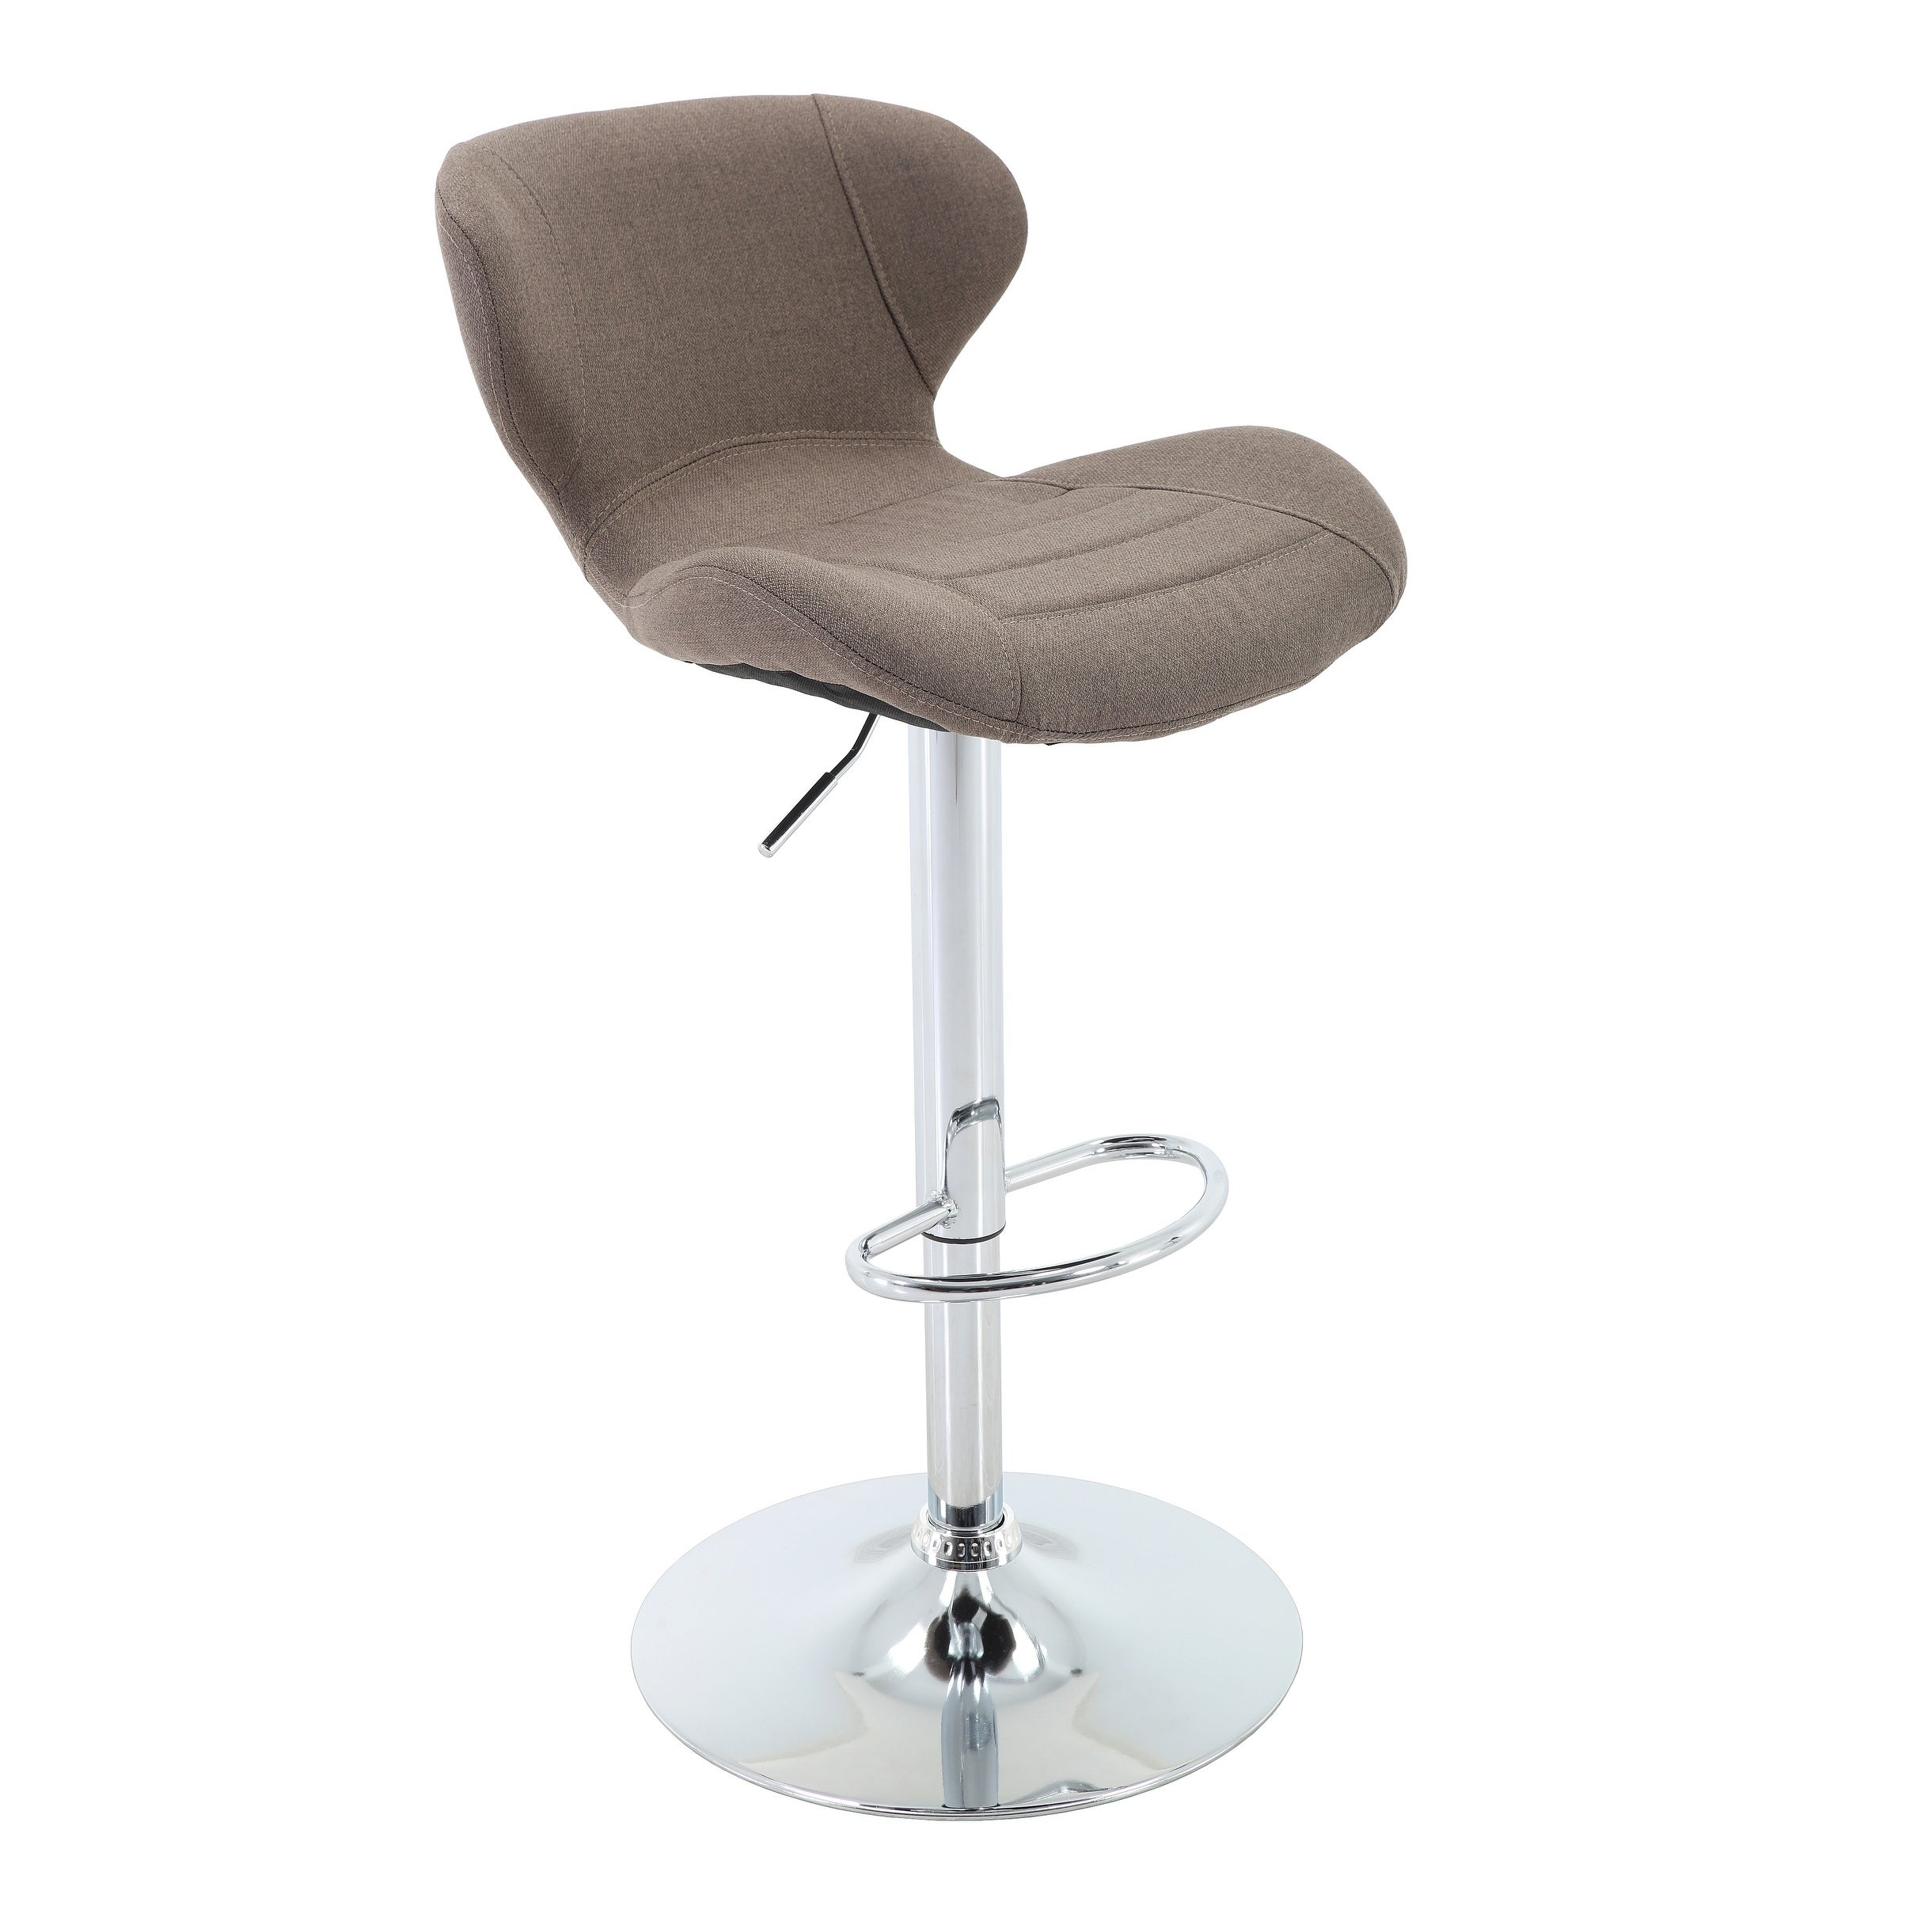 Excellent Adjustable Height Upholstered Barstool With Footrest Gamerscity Chair Design For Home Gamerscityorg